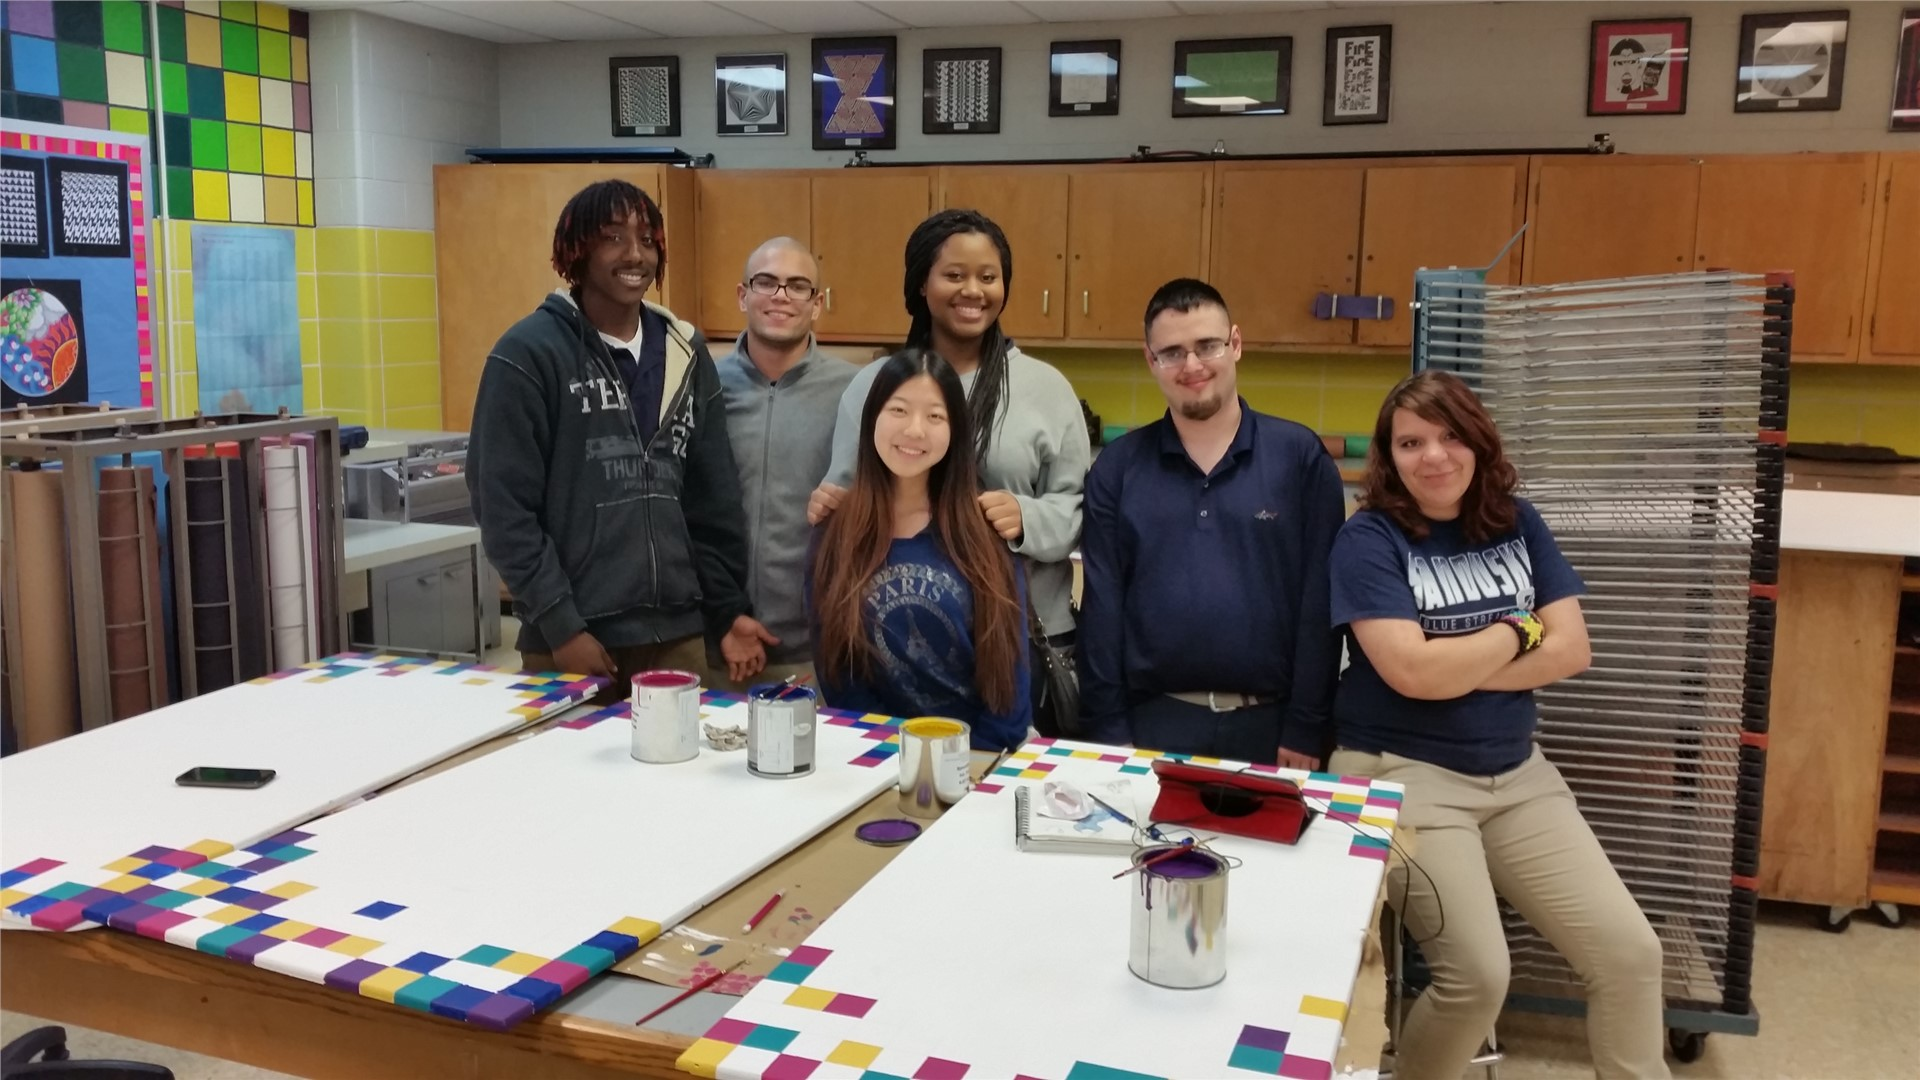 Photo of art students in art room